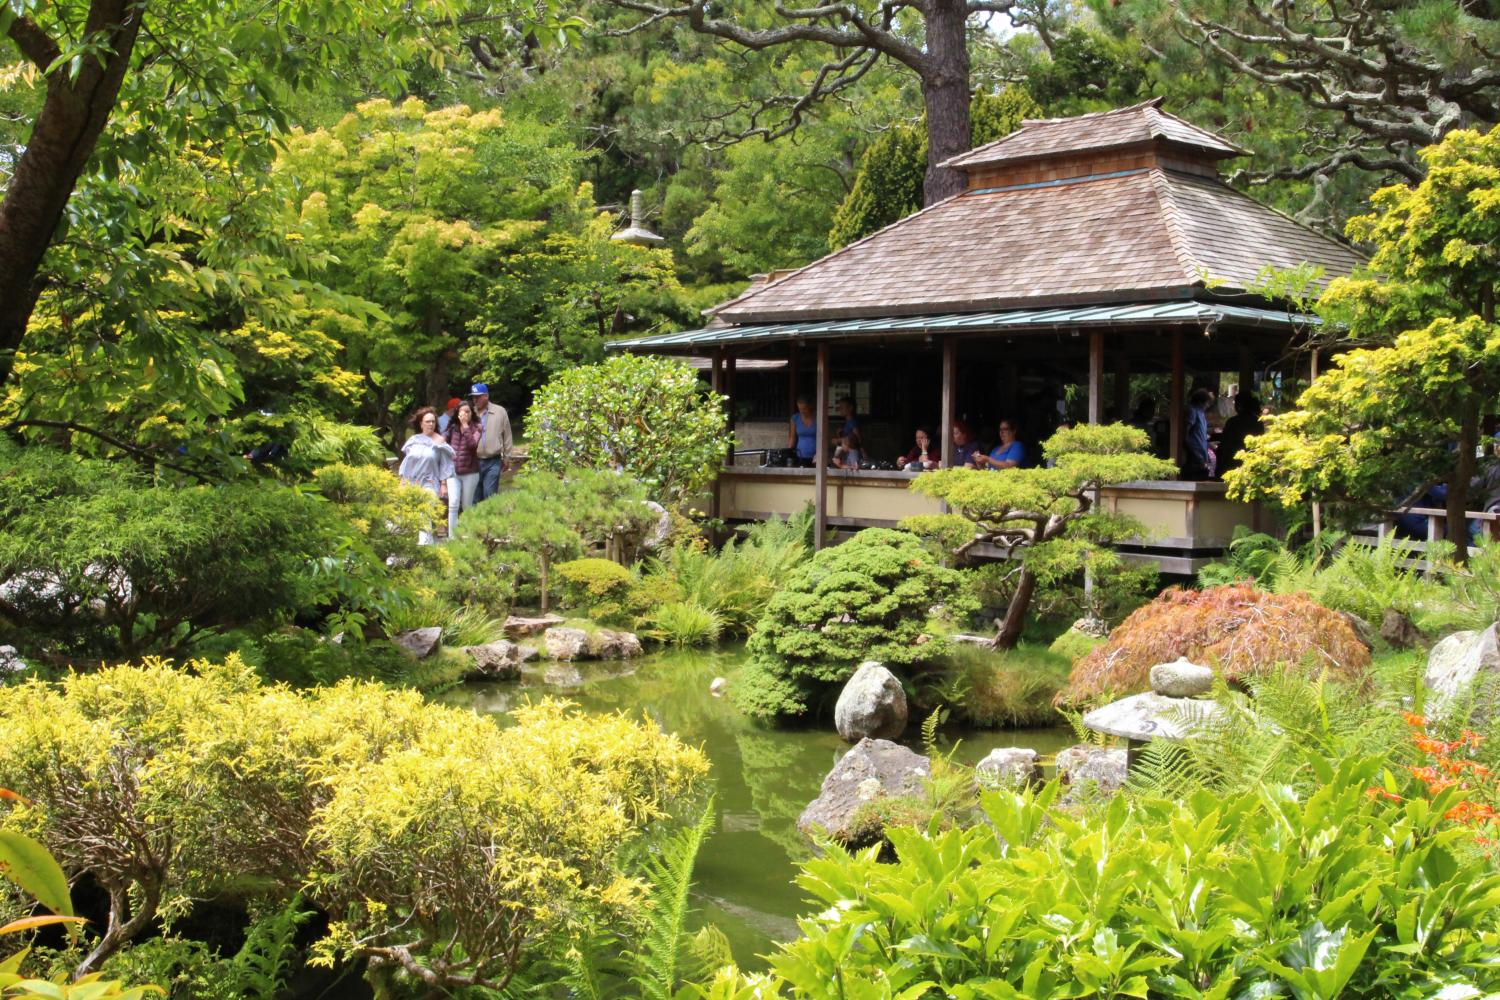 The Golden Gate Park also features the Japanese Tea Garden, in which visitors can experience the Japanese culture through tea, sceneries, and structures.